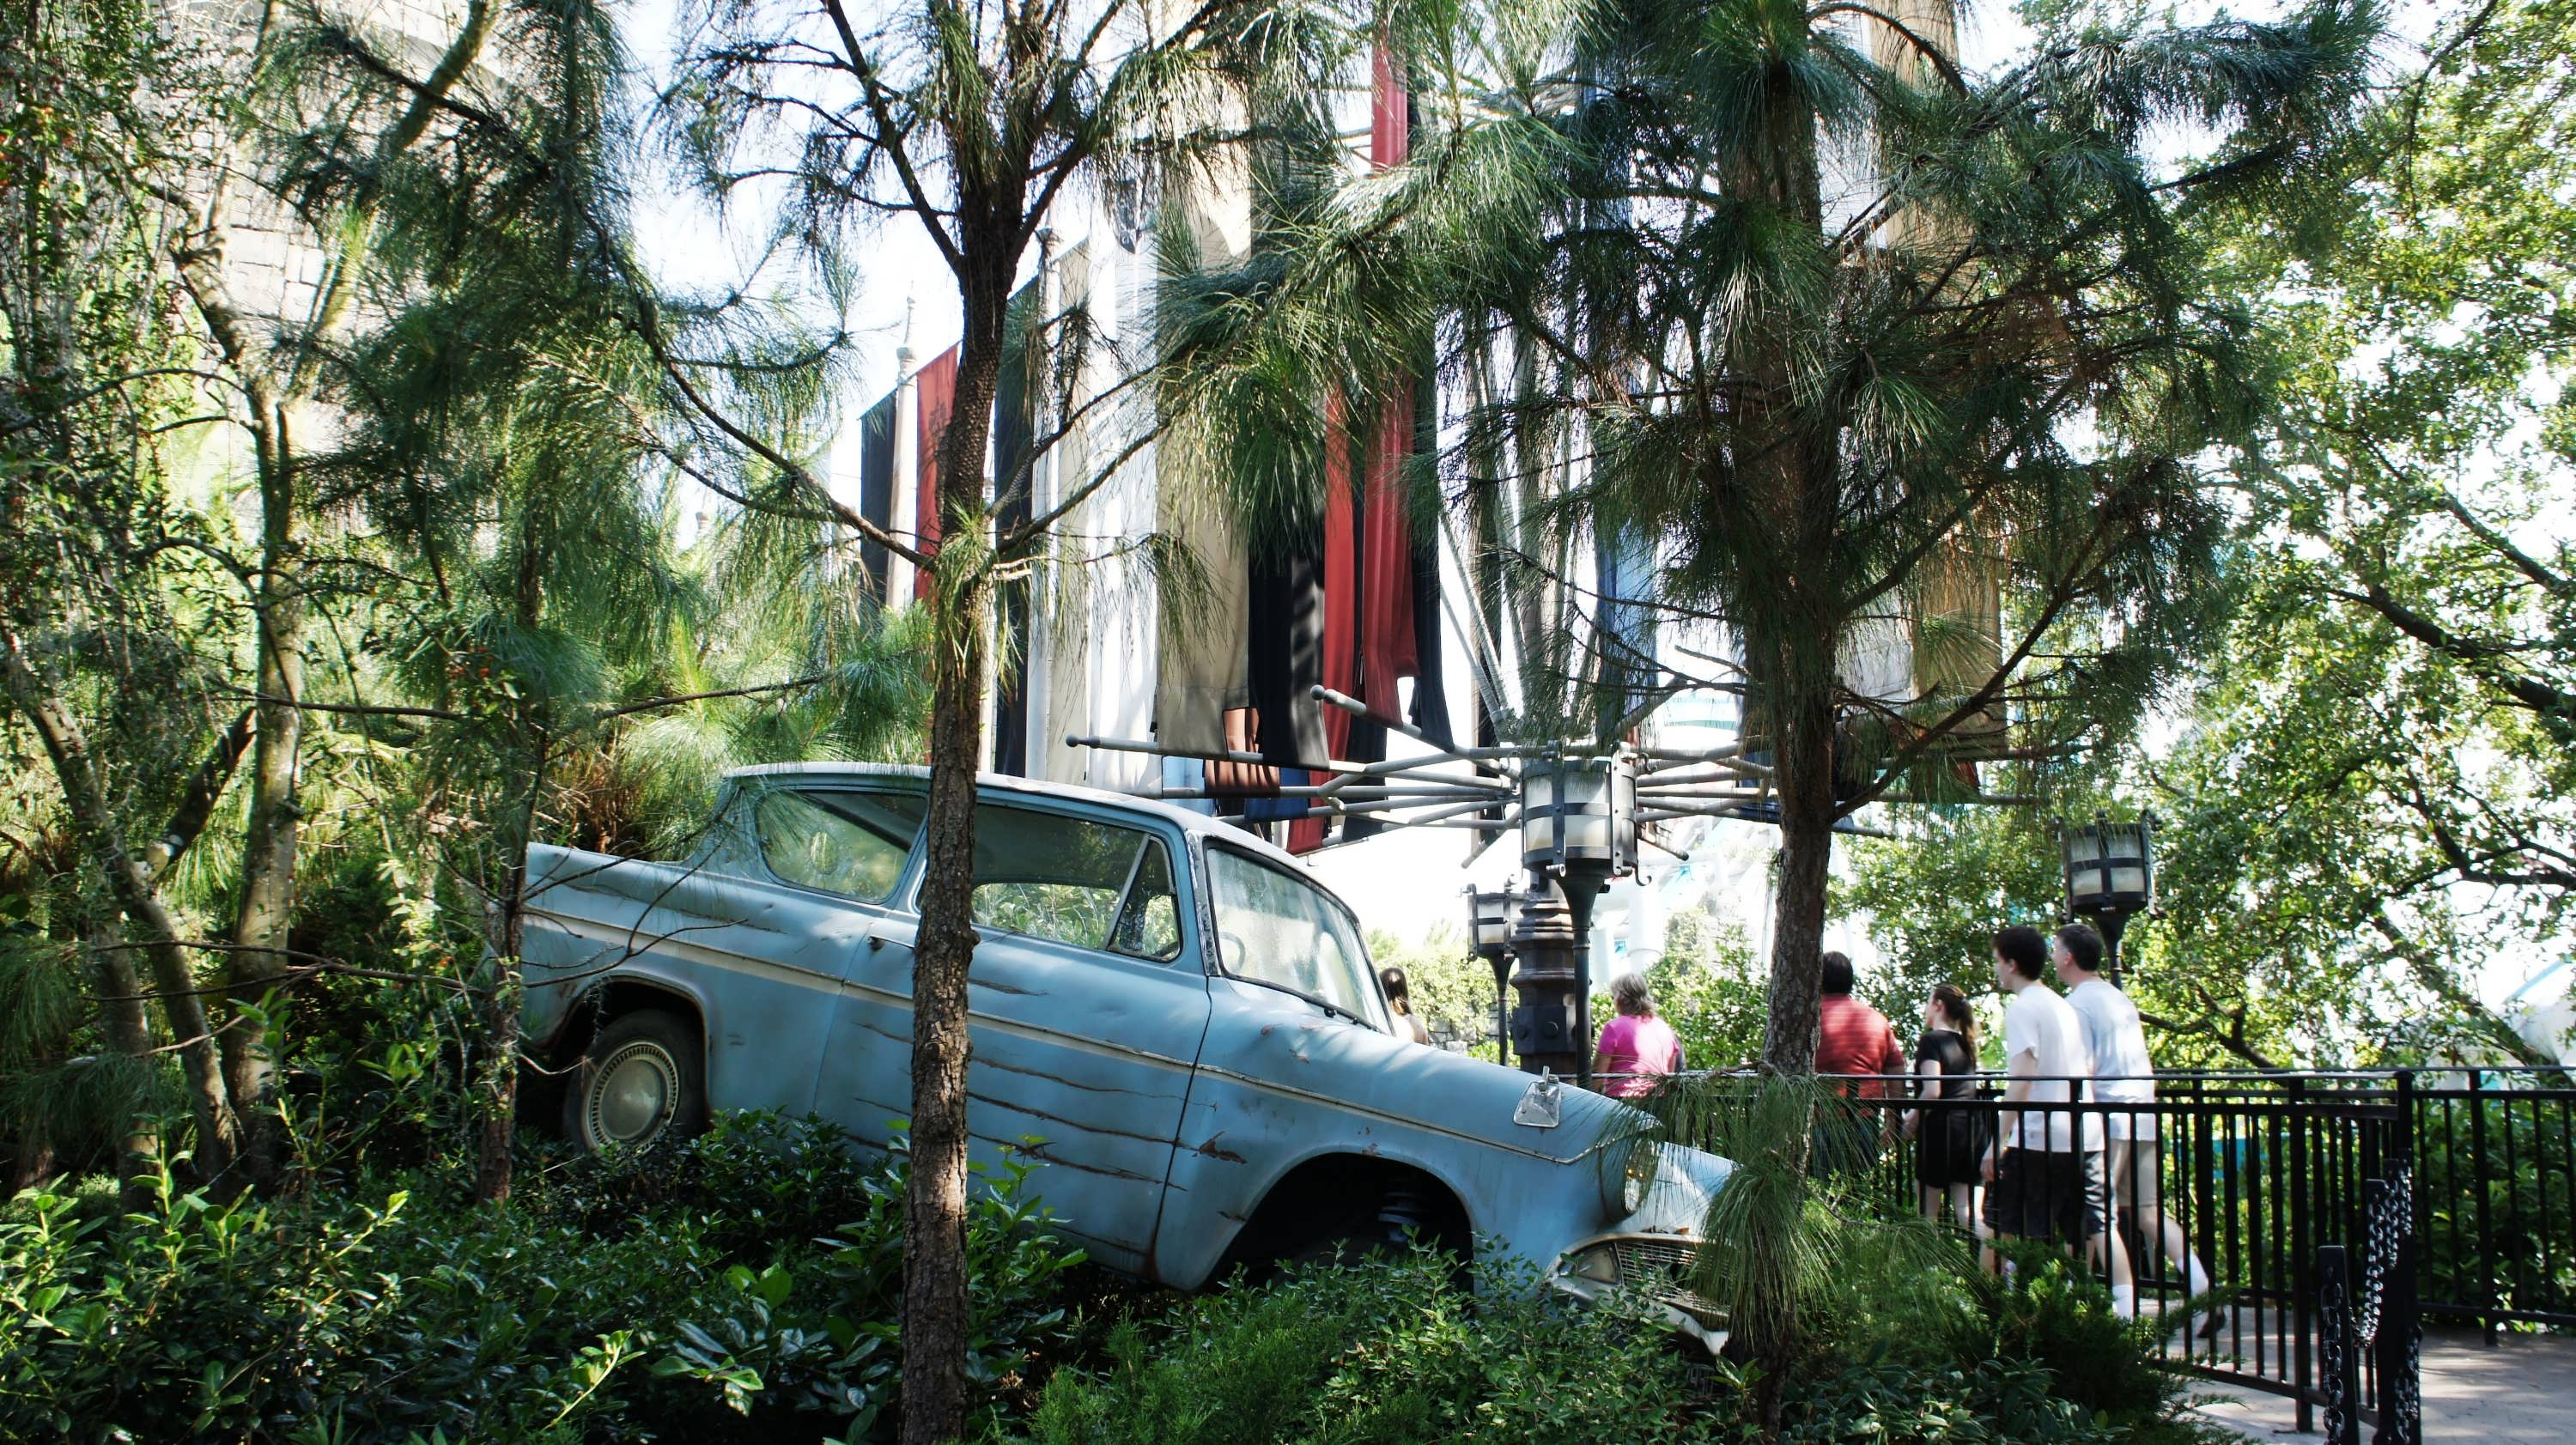 Ron's car in Dragon Challenge queue at Universal's Islands of Adventure